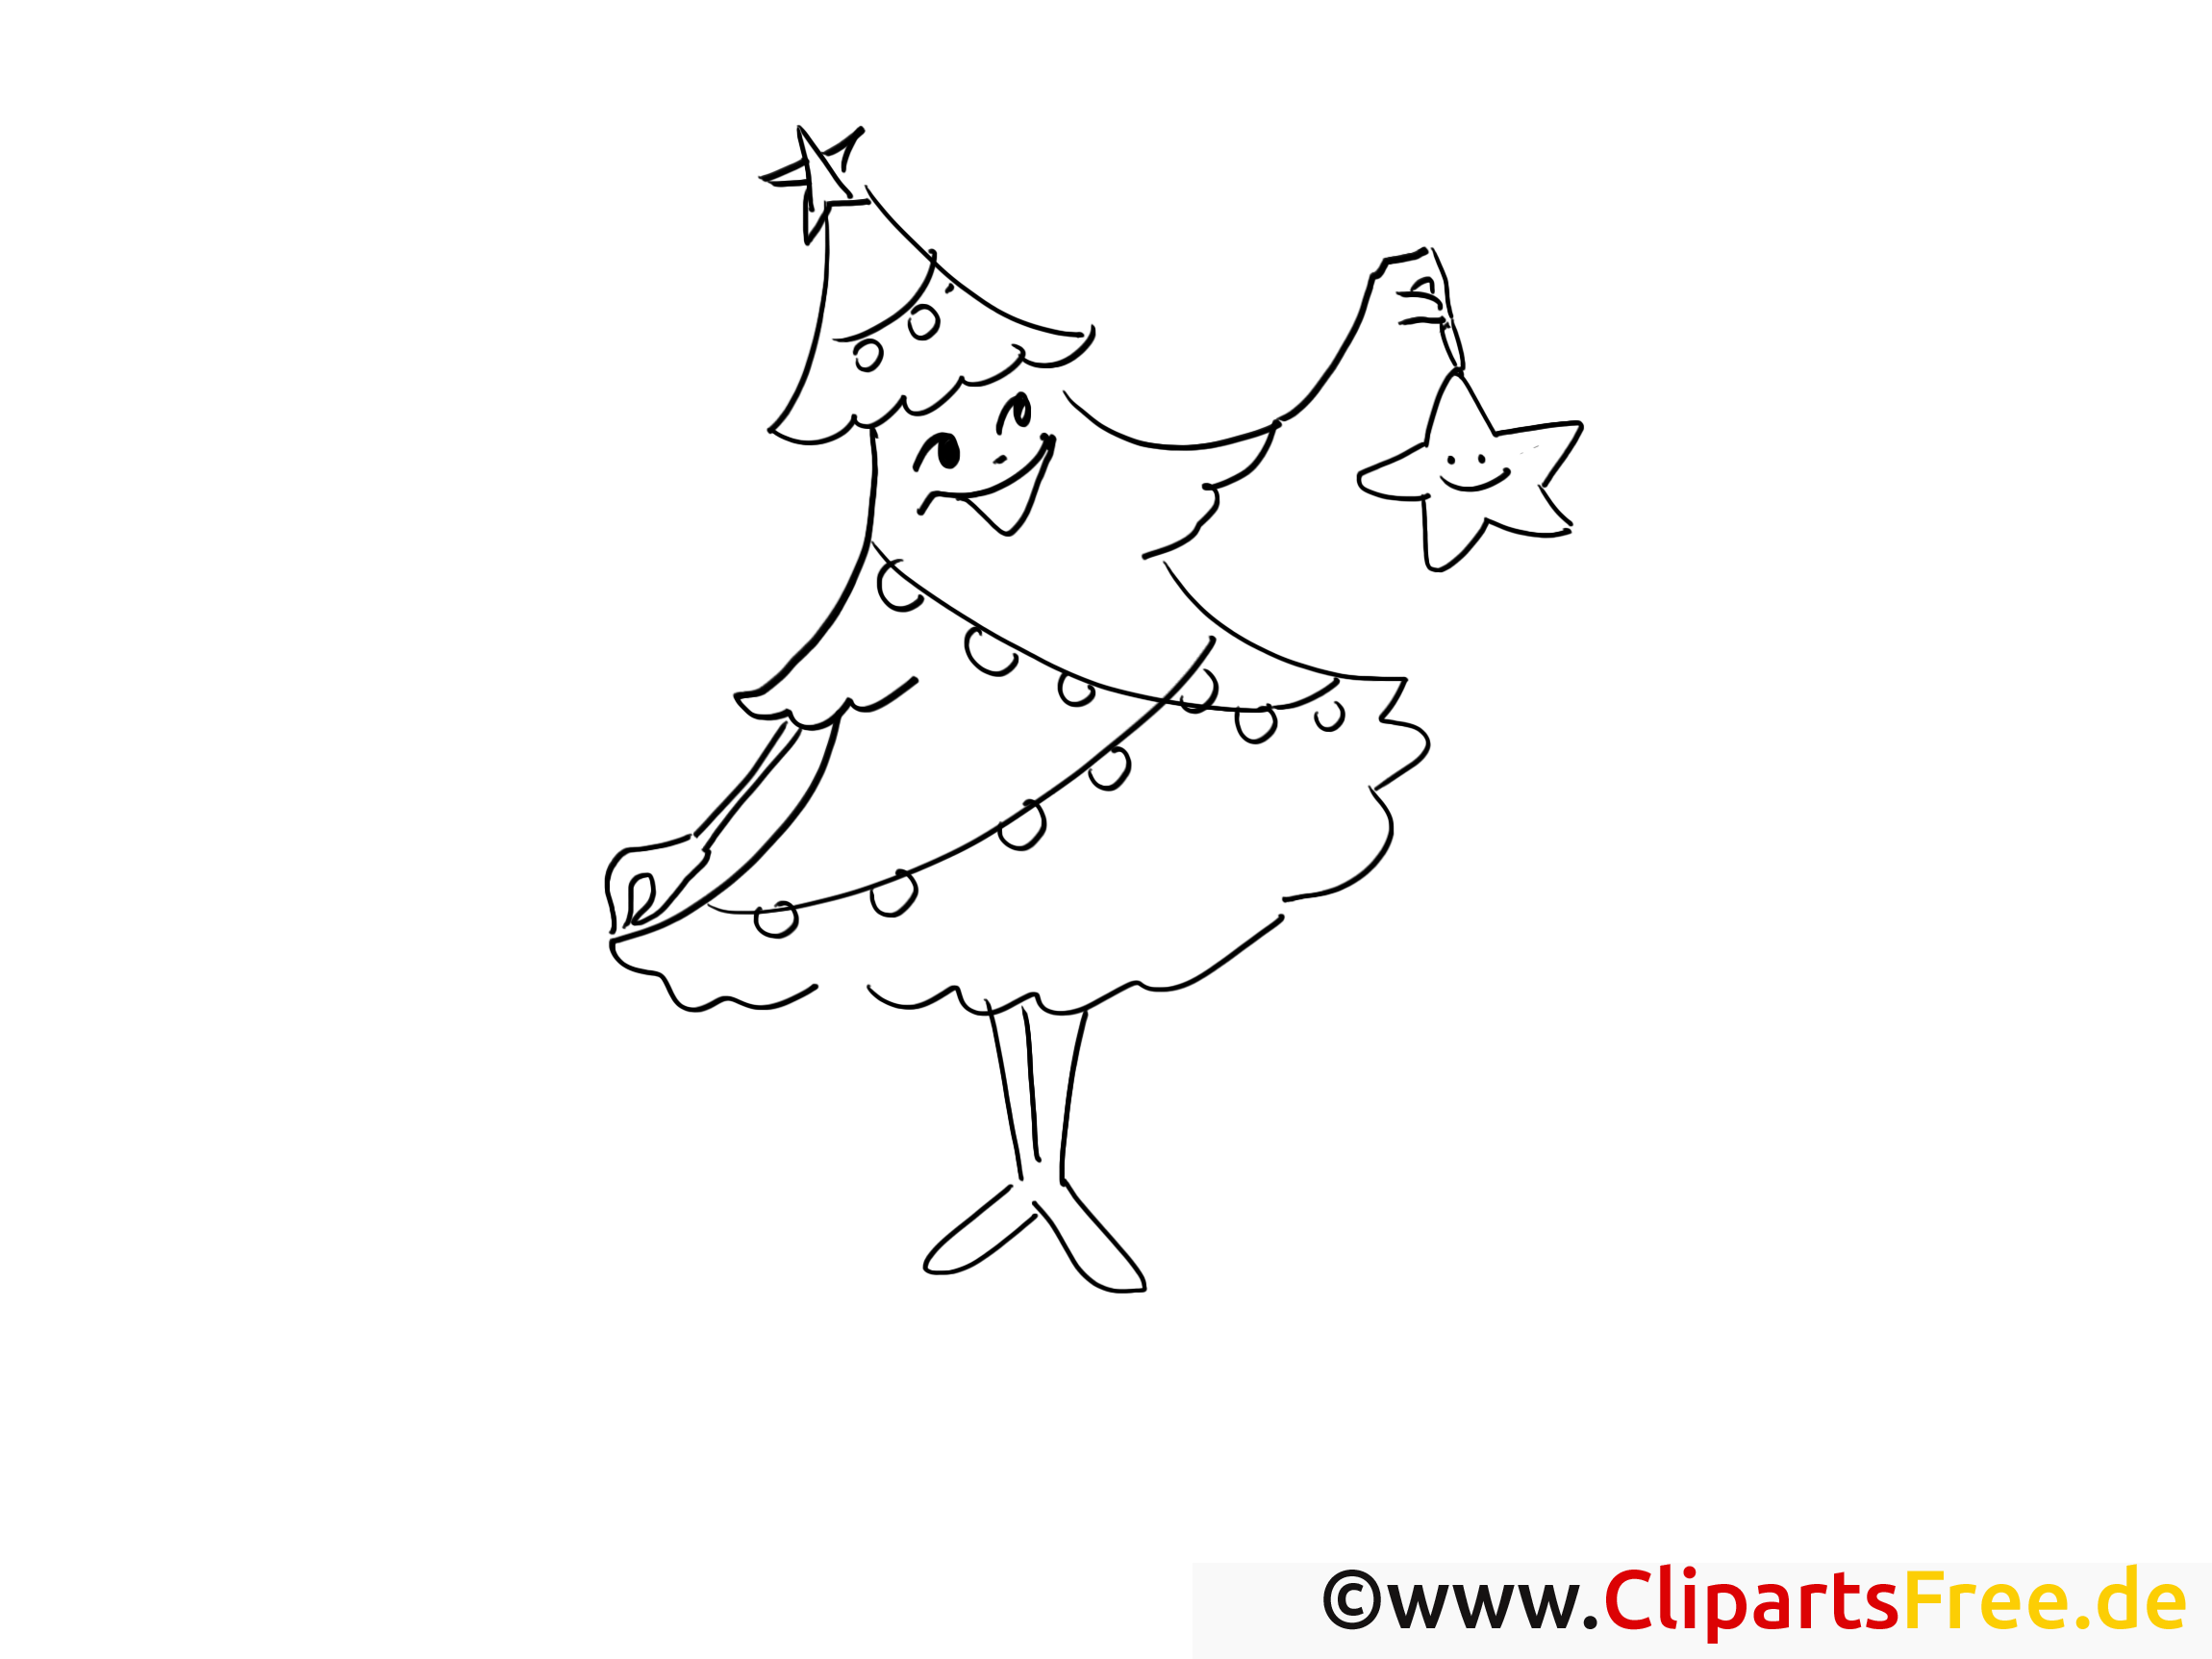 Étoile sapin image – Coloriage avent illustration